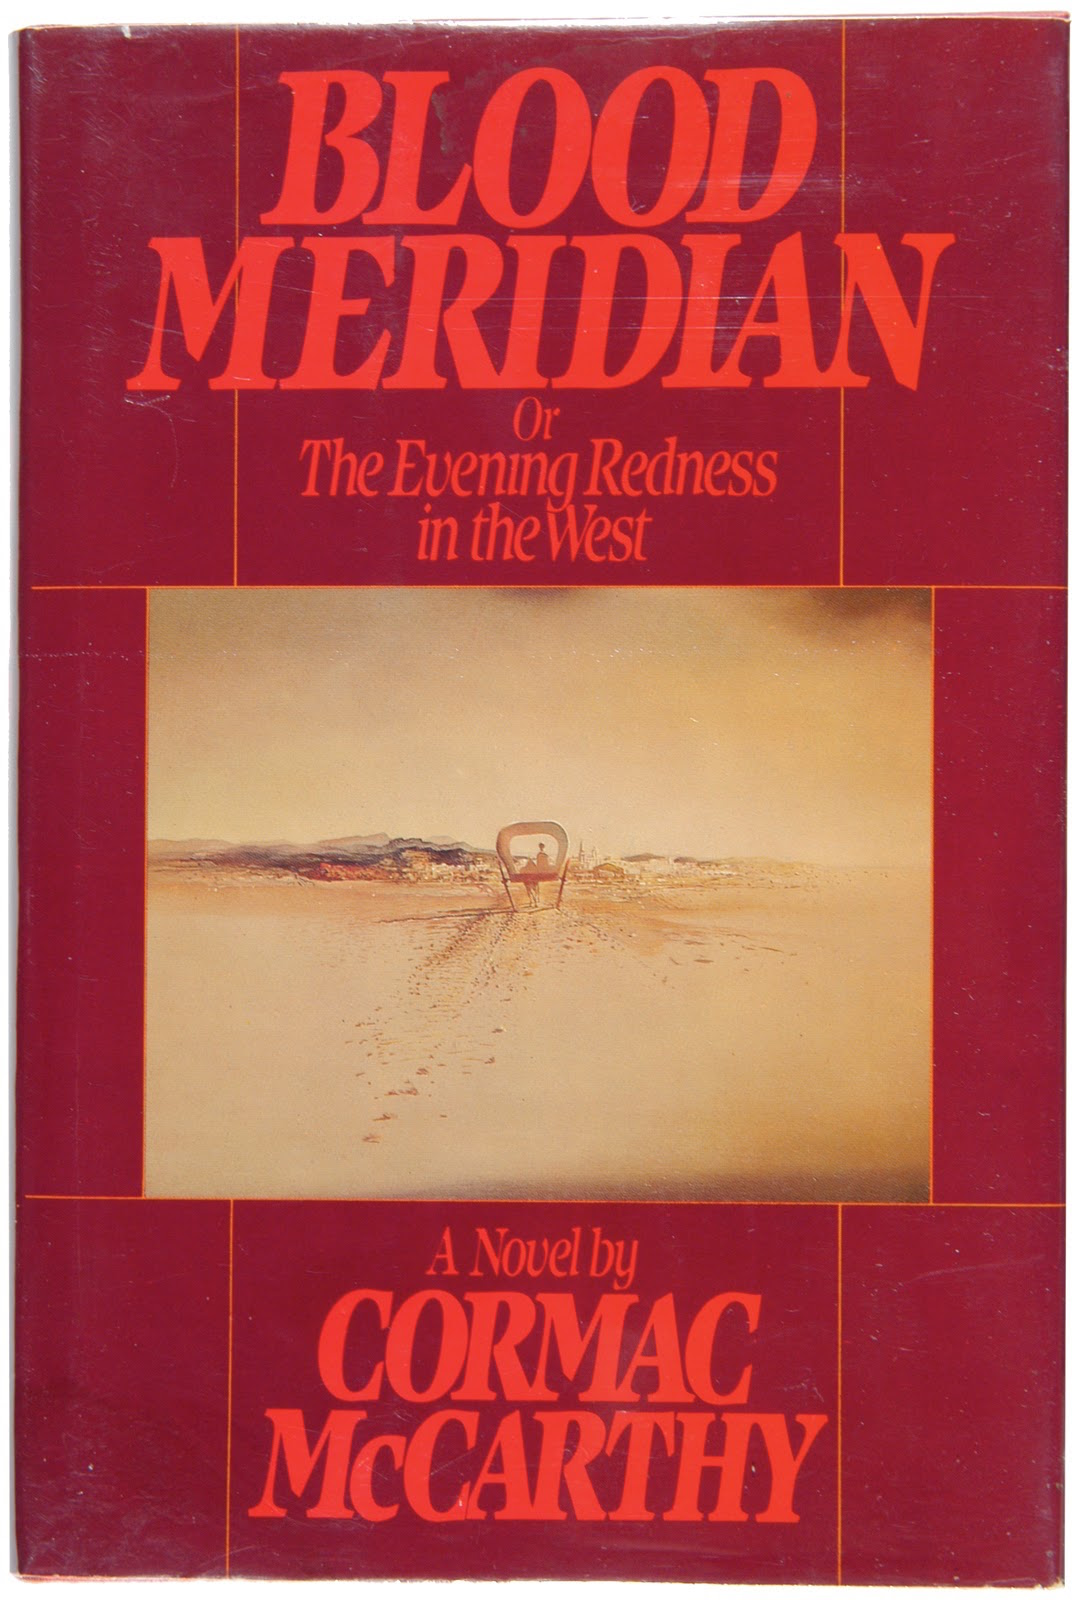 the setting of blood meridian essay